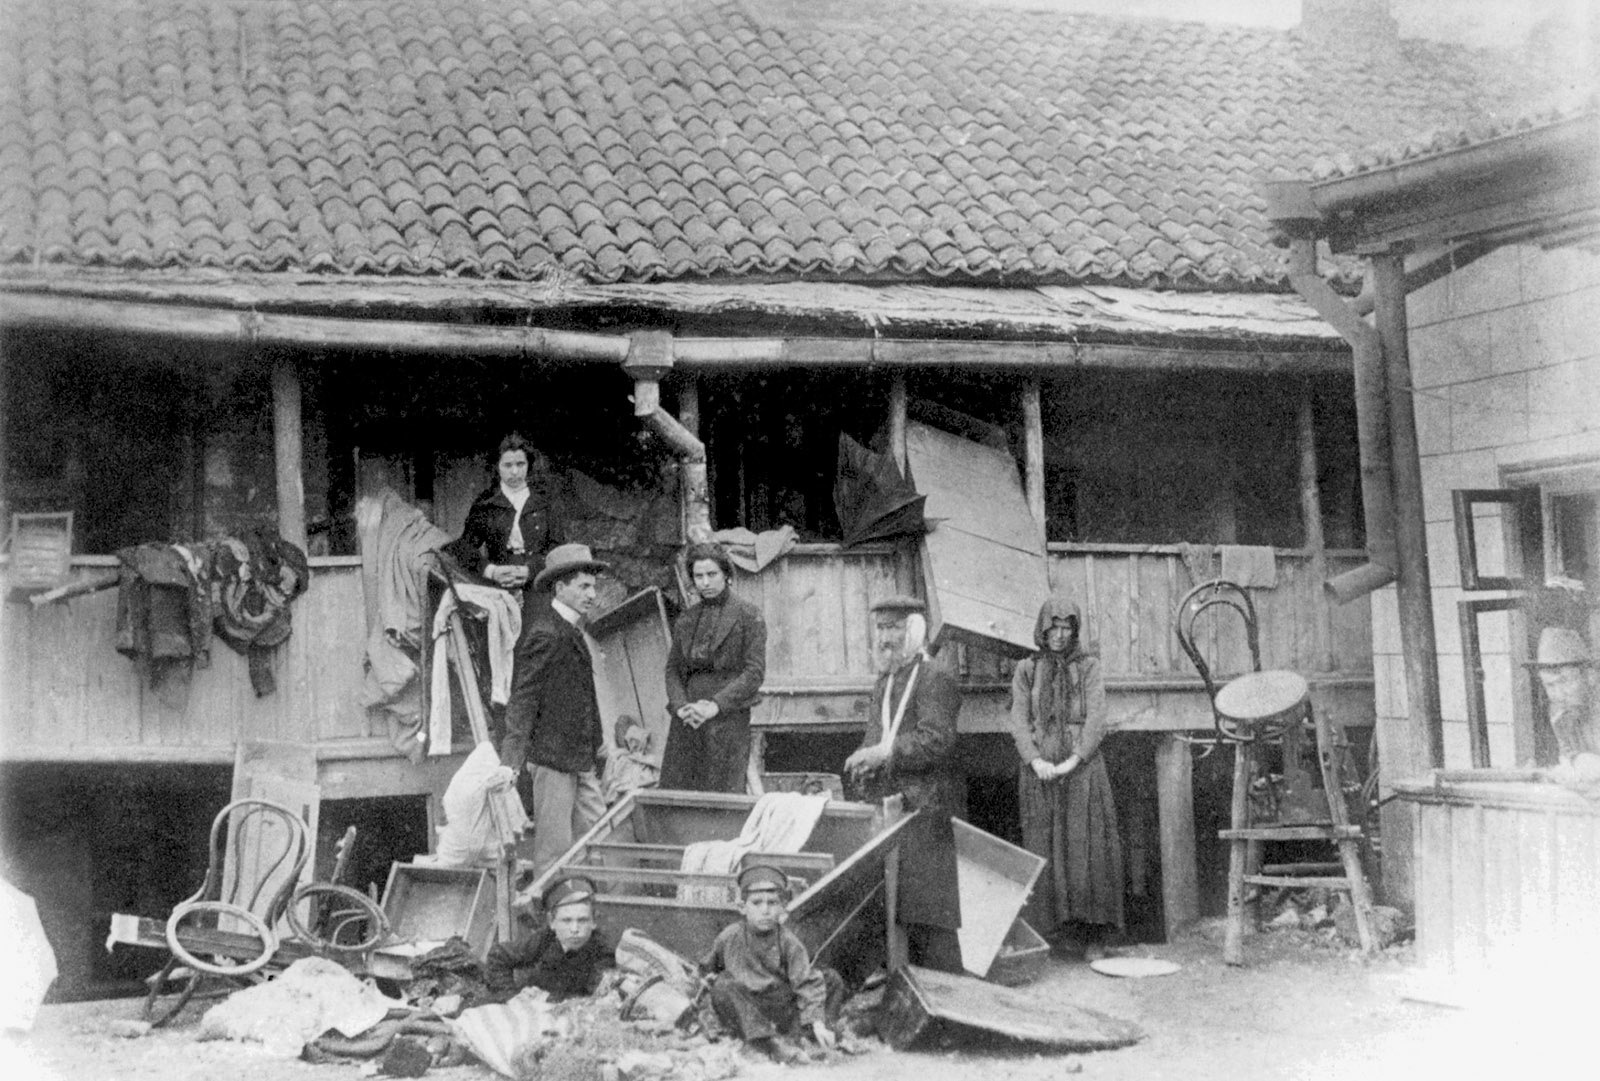 Pogrom victims in front of a vandalized house in the Bessarabian city of Kishinev, 1903